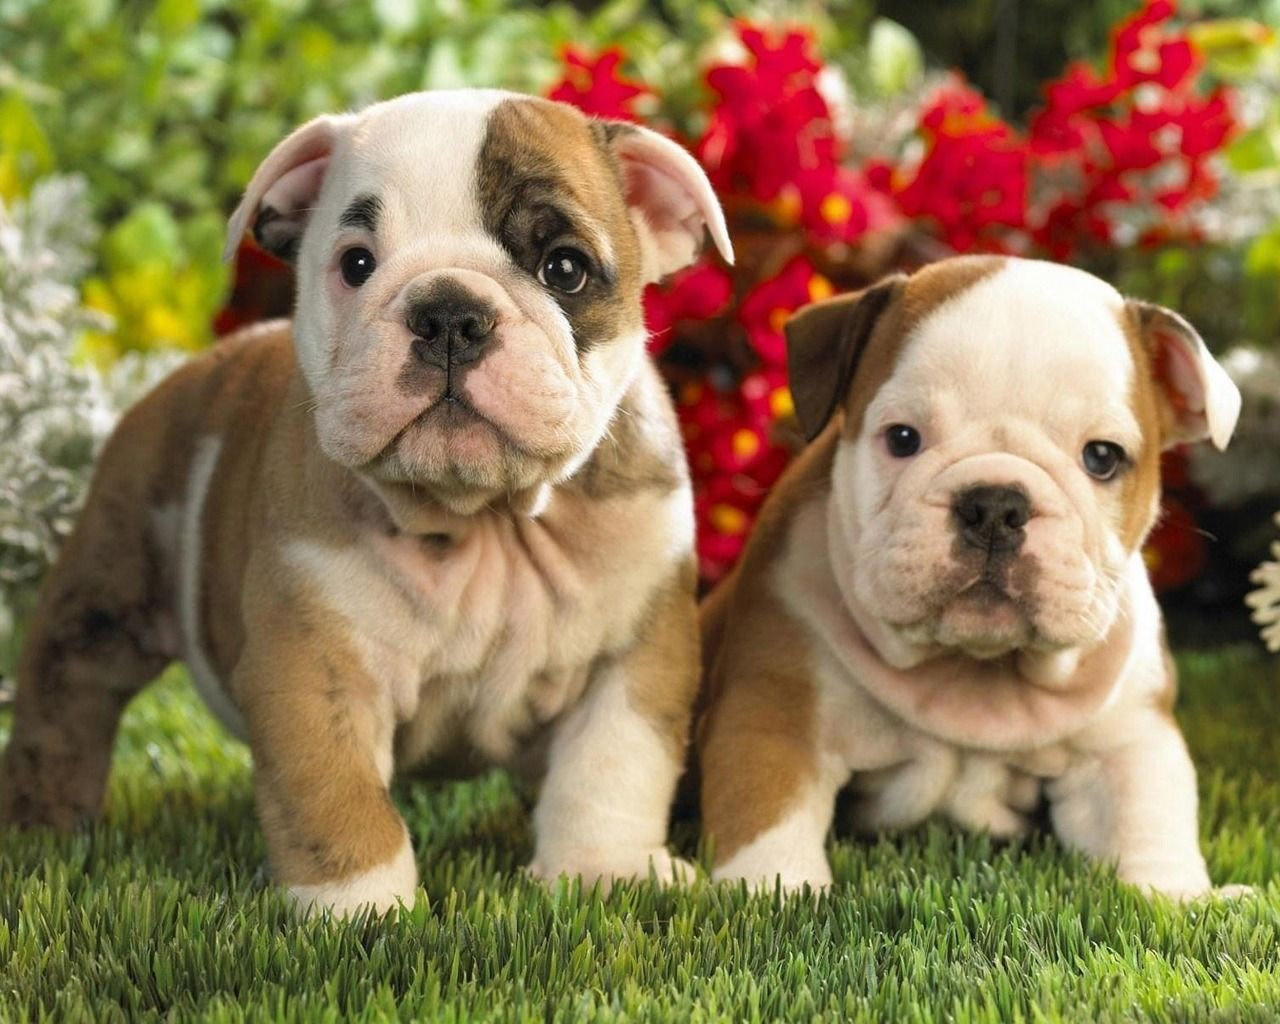 Bulldog Puppies Wallpaper Cute Bulldog Puppies English Bulldog